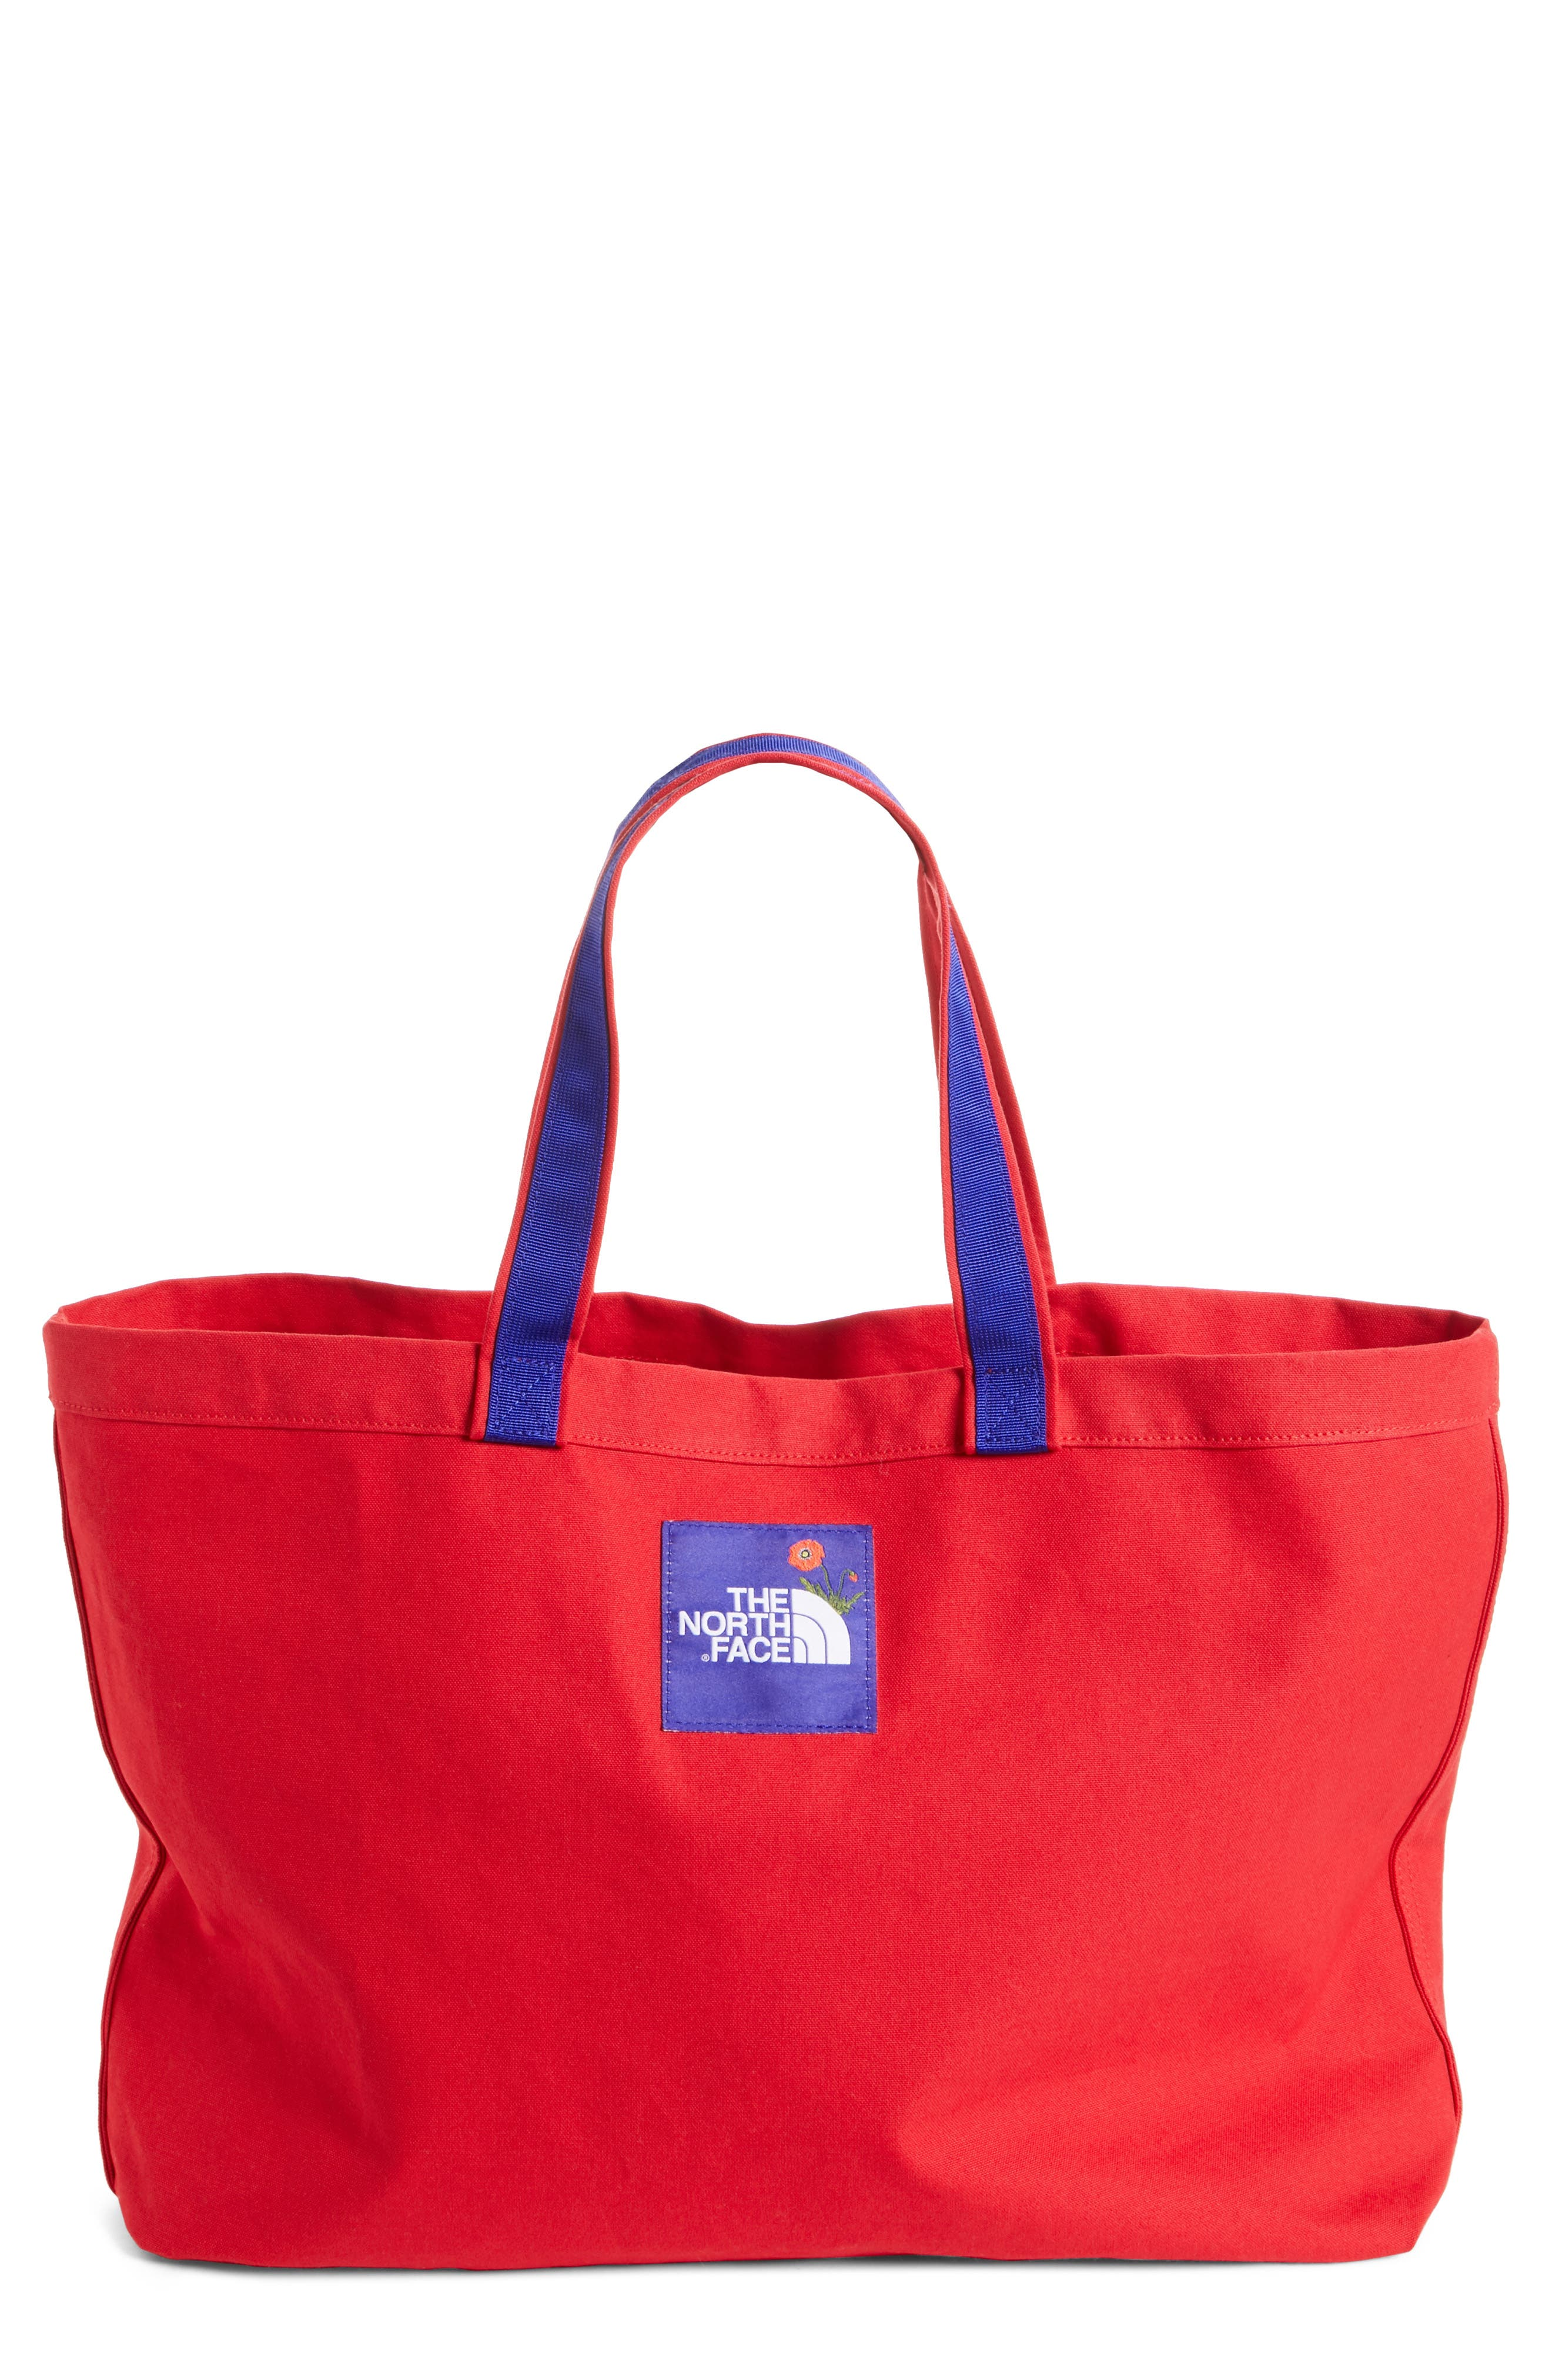 Main Image - The North Face Large Tote